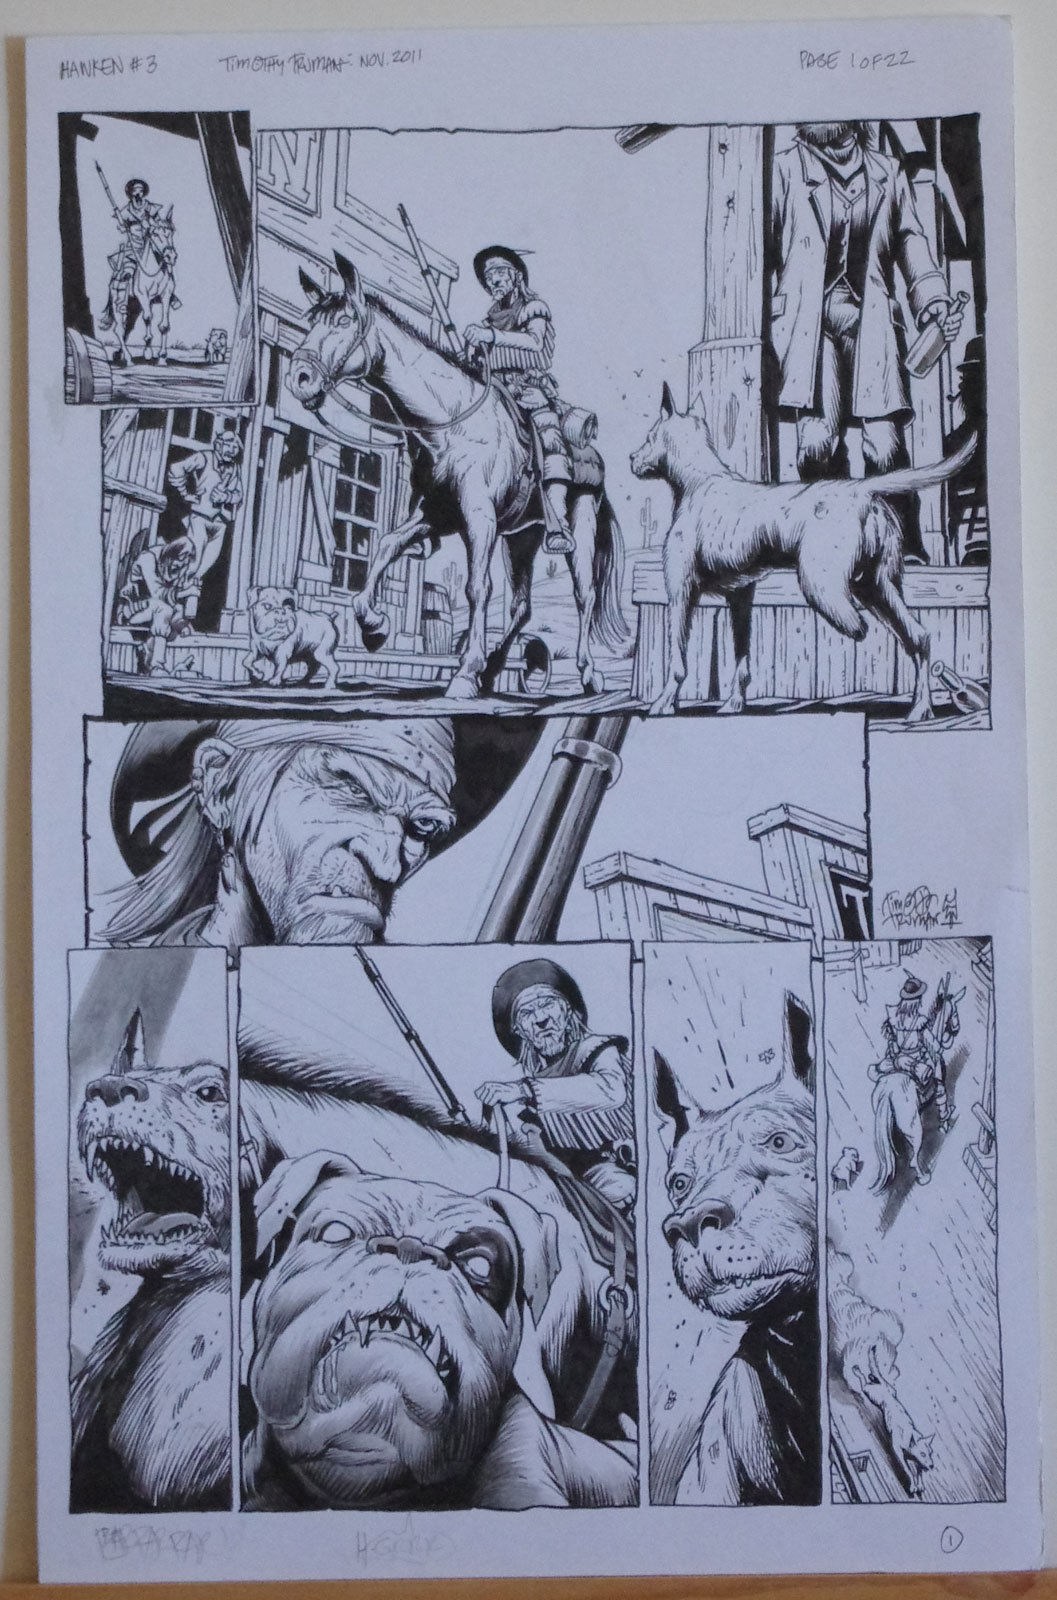 TIMOTHY TRUMAN original art, HAWKEN #3, Pg #1, 3 Legged Dog, 11